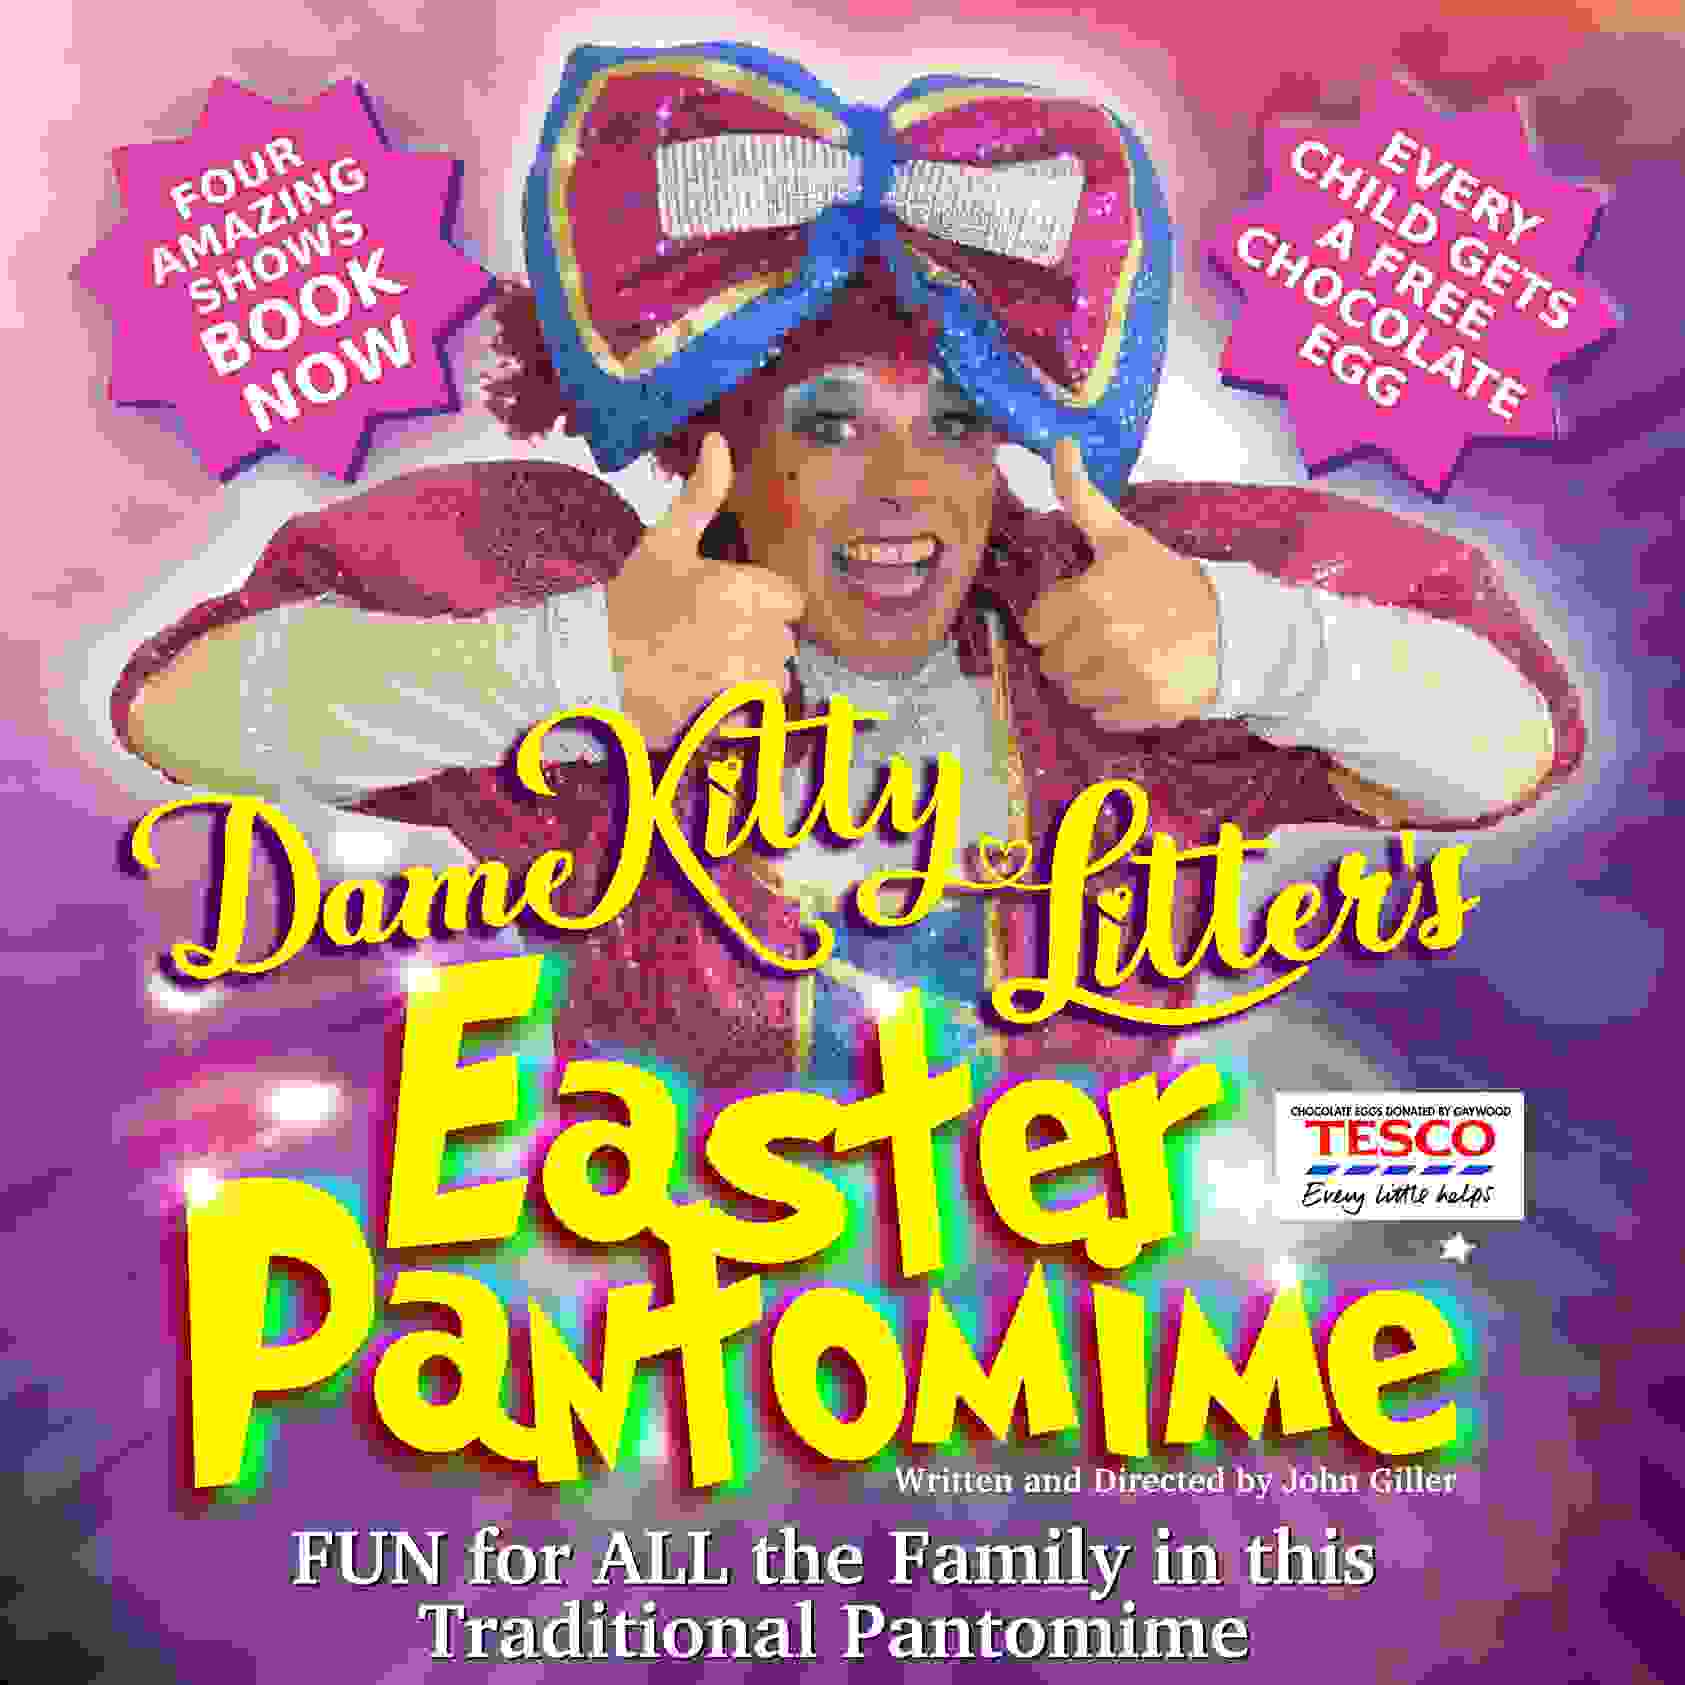 Dame Kitty Litter's Easter Pantomime